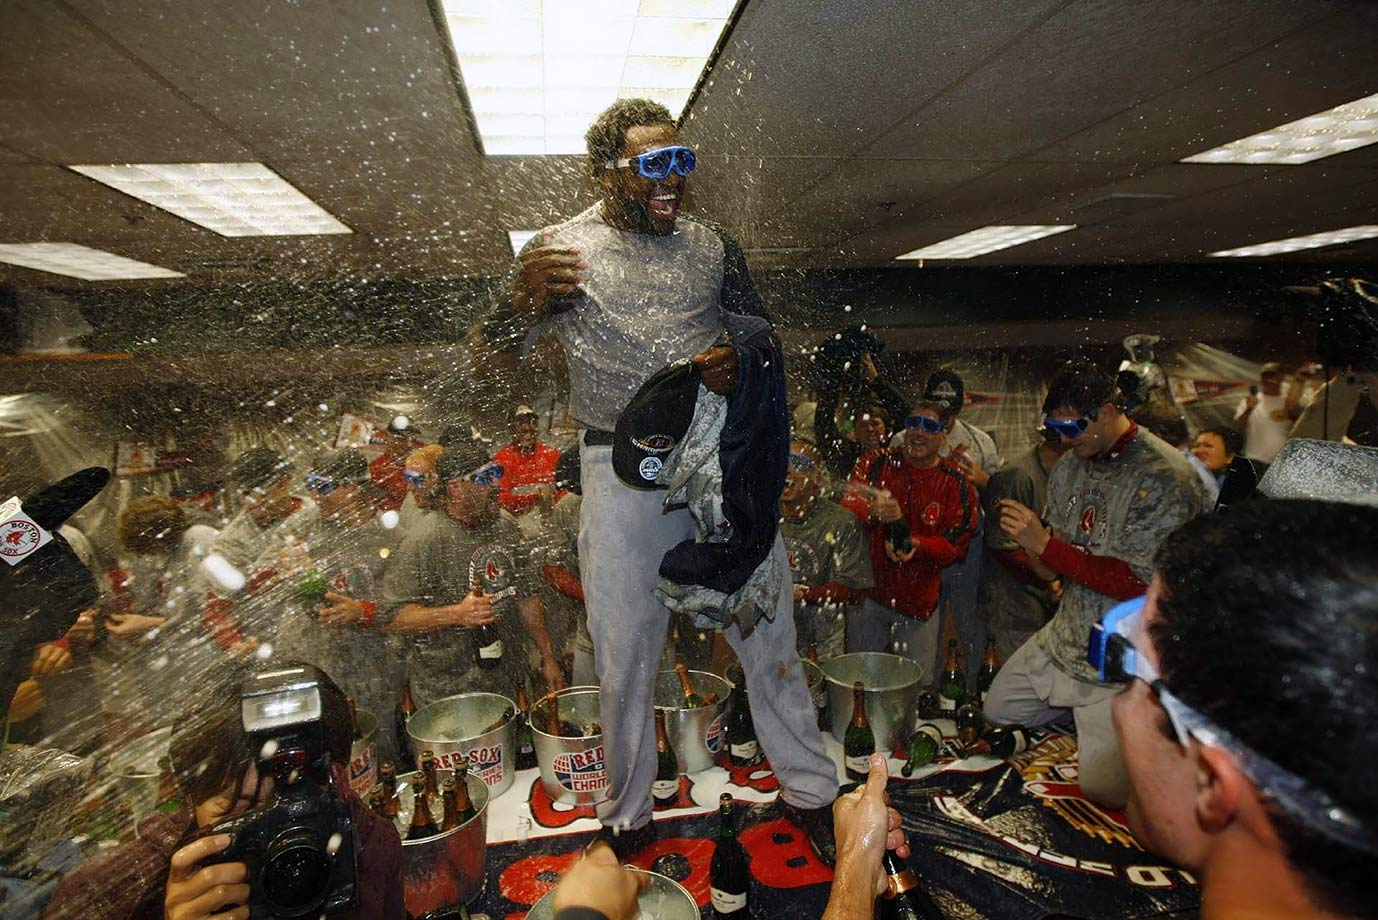 October 28, 2007 — World Series, Game 4